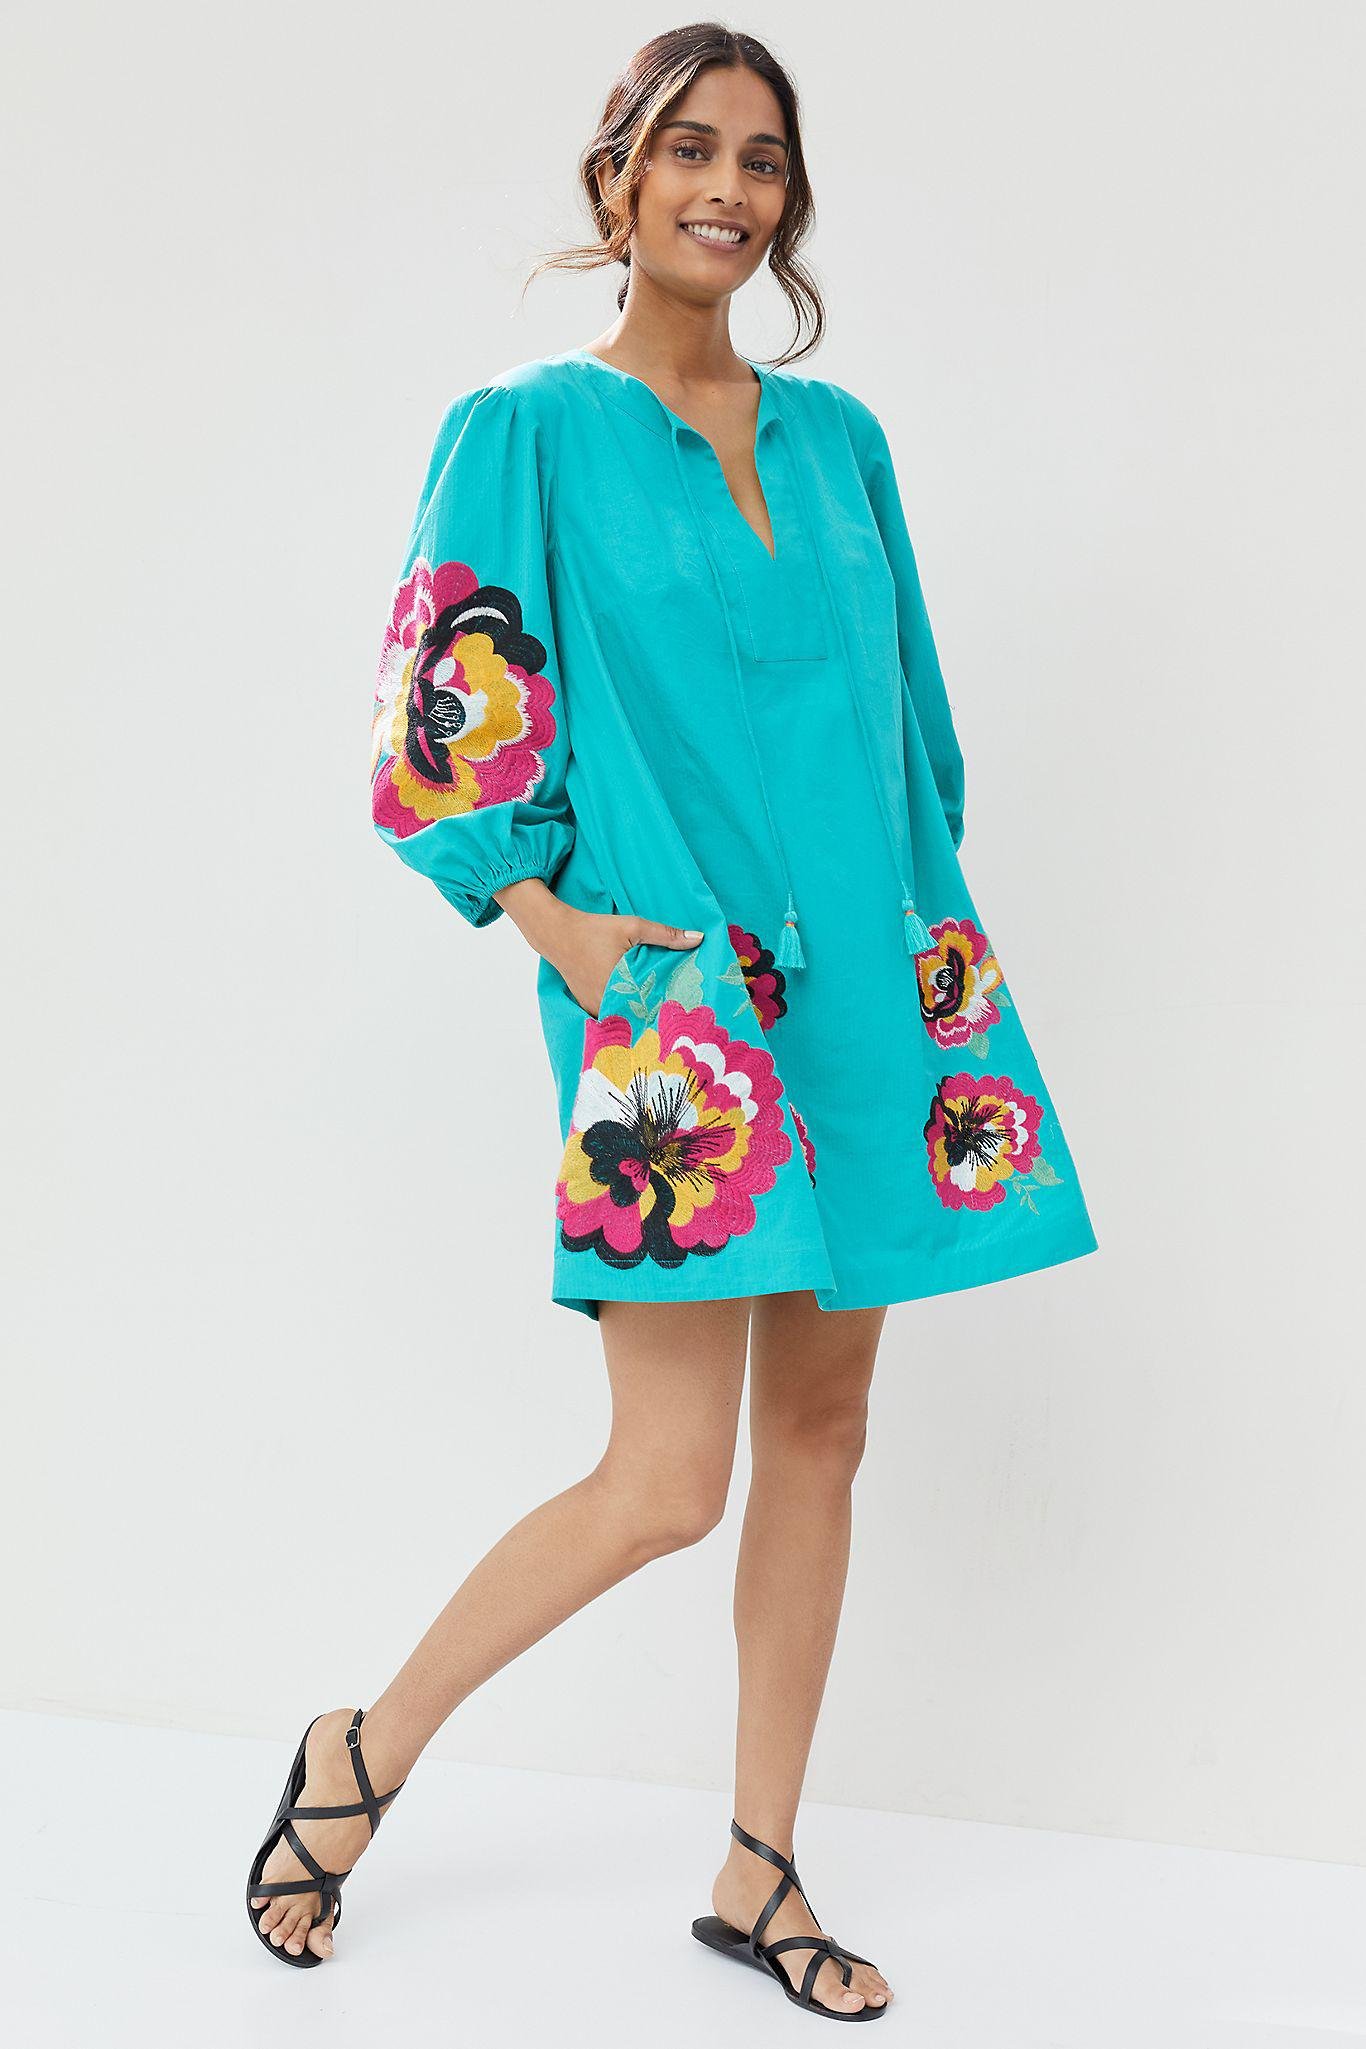 Maeve Embroidered Tunic Dress